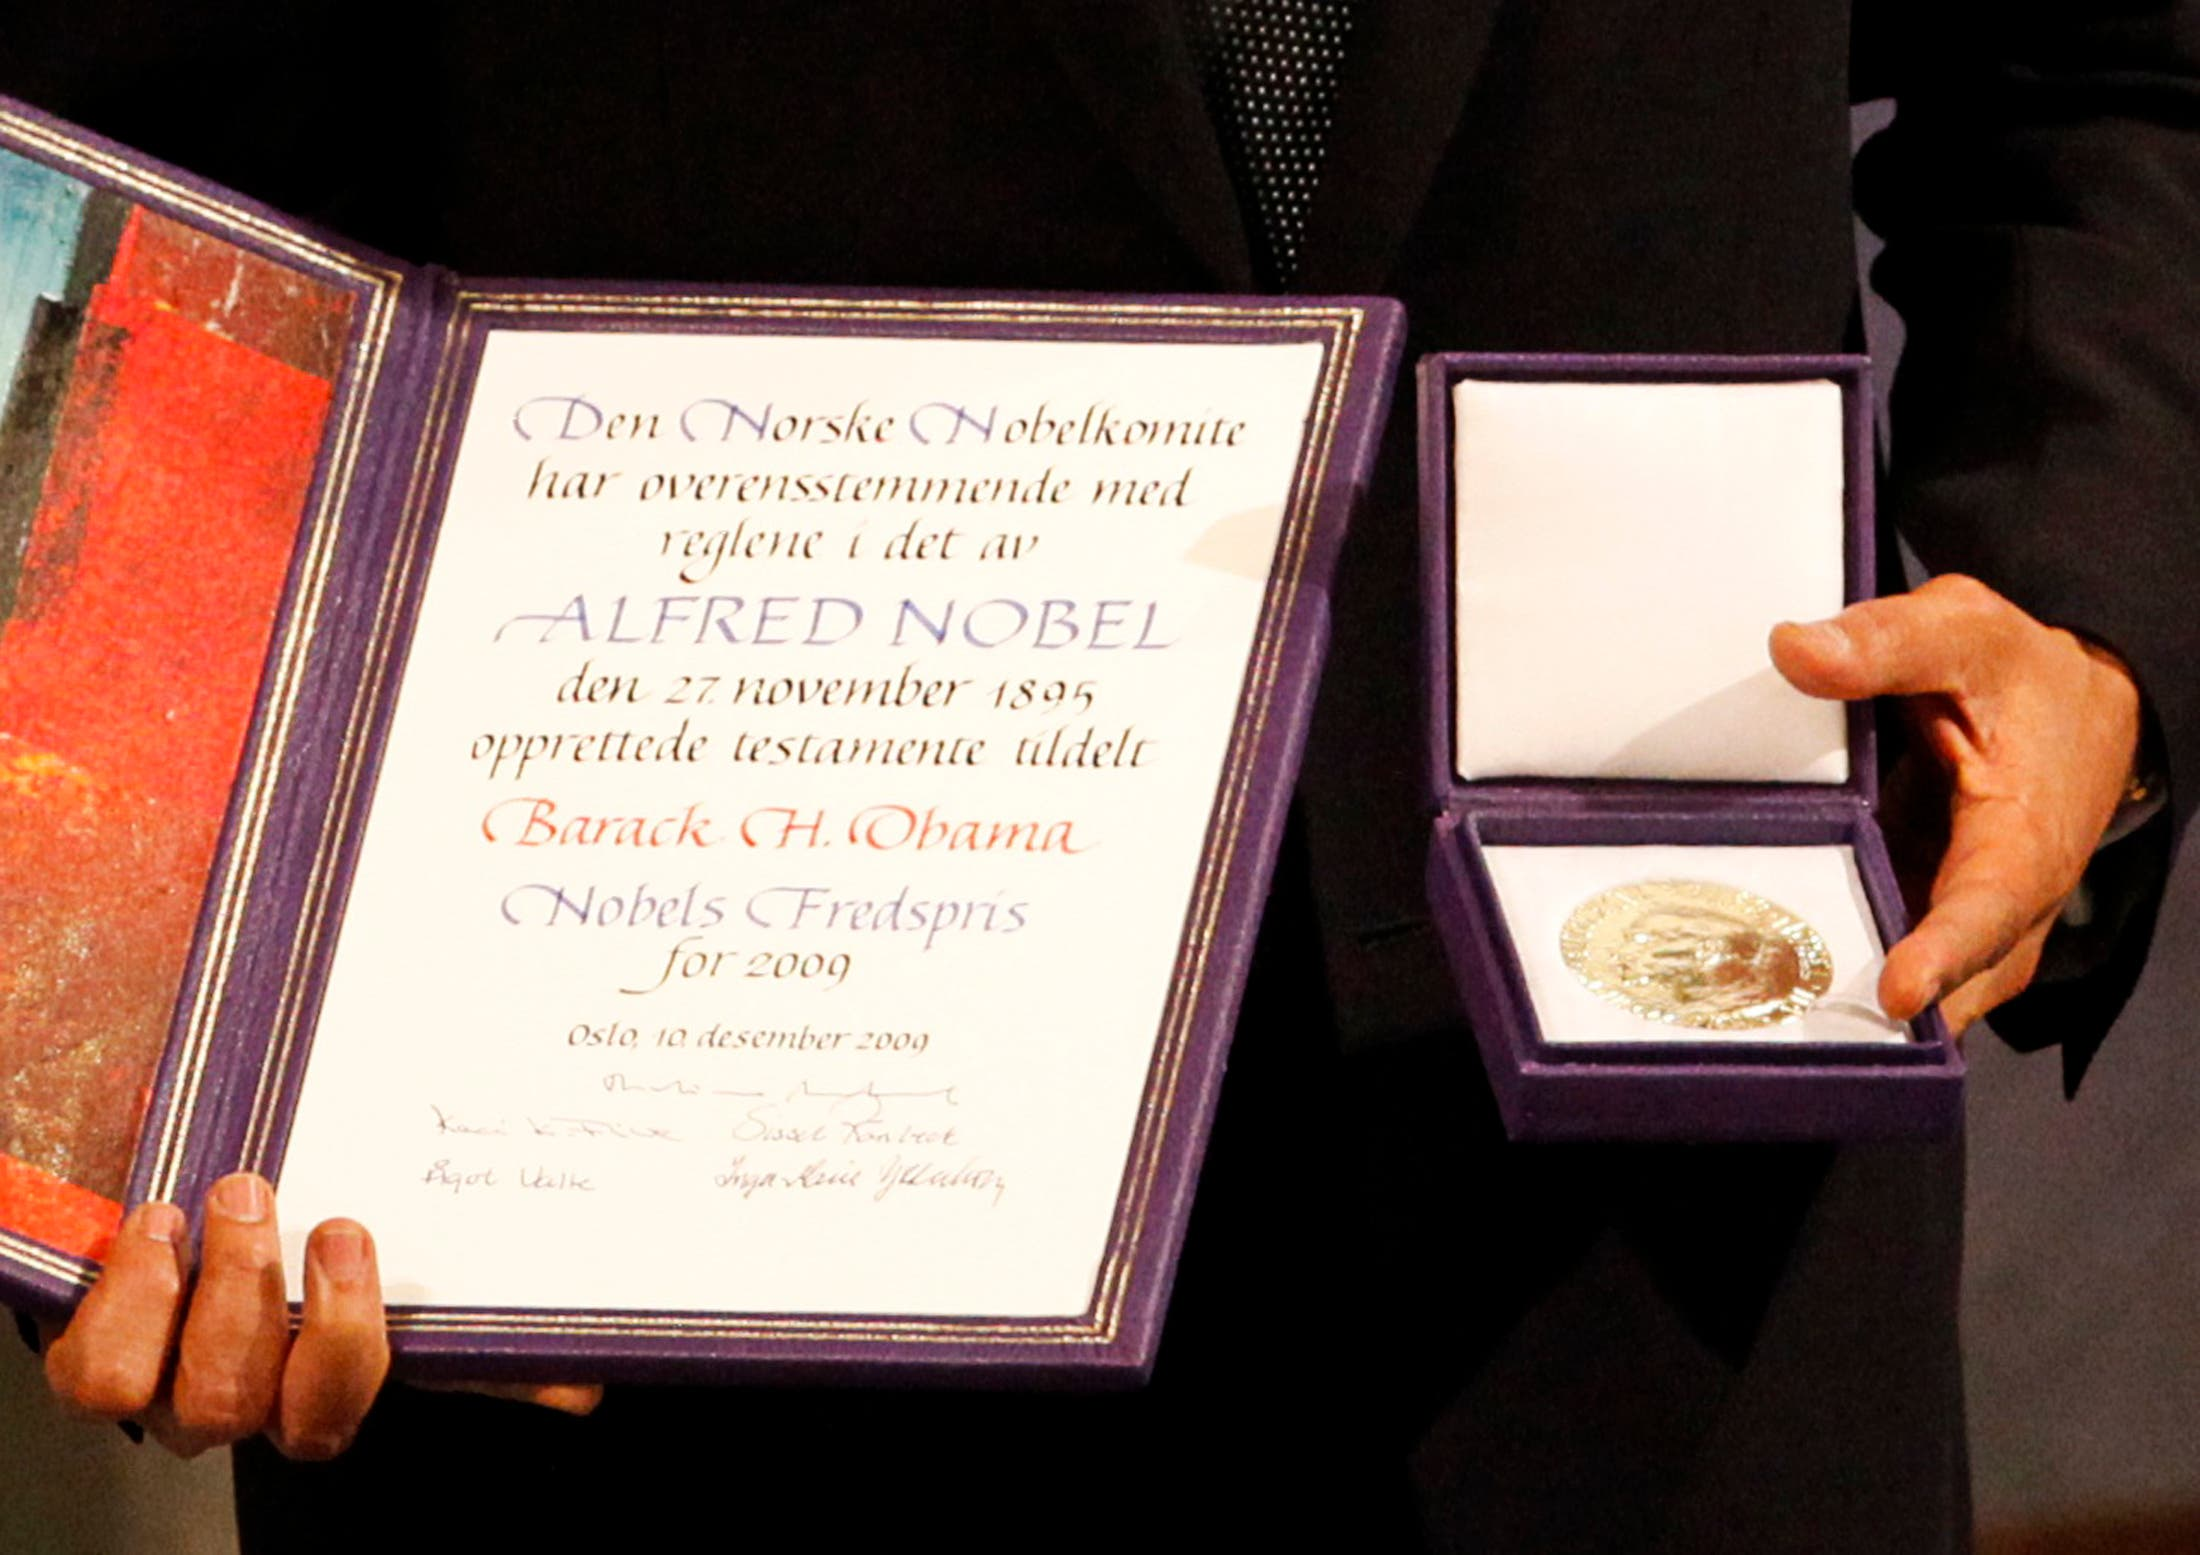 The Nobel committee awarded the peace prize to Obama for his efforts to strengthen international diplomacy and cited his push for nuclear disarmament. (File photo: Reuters)